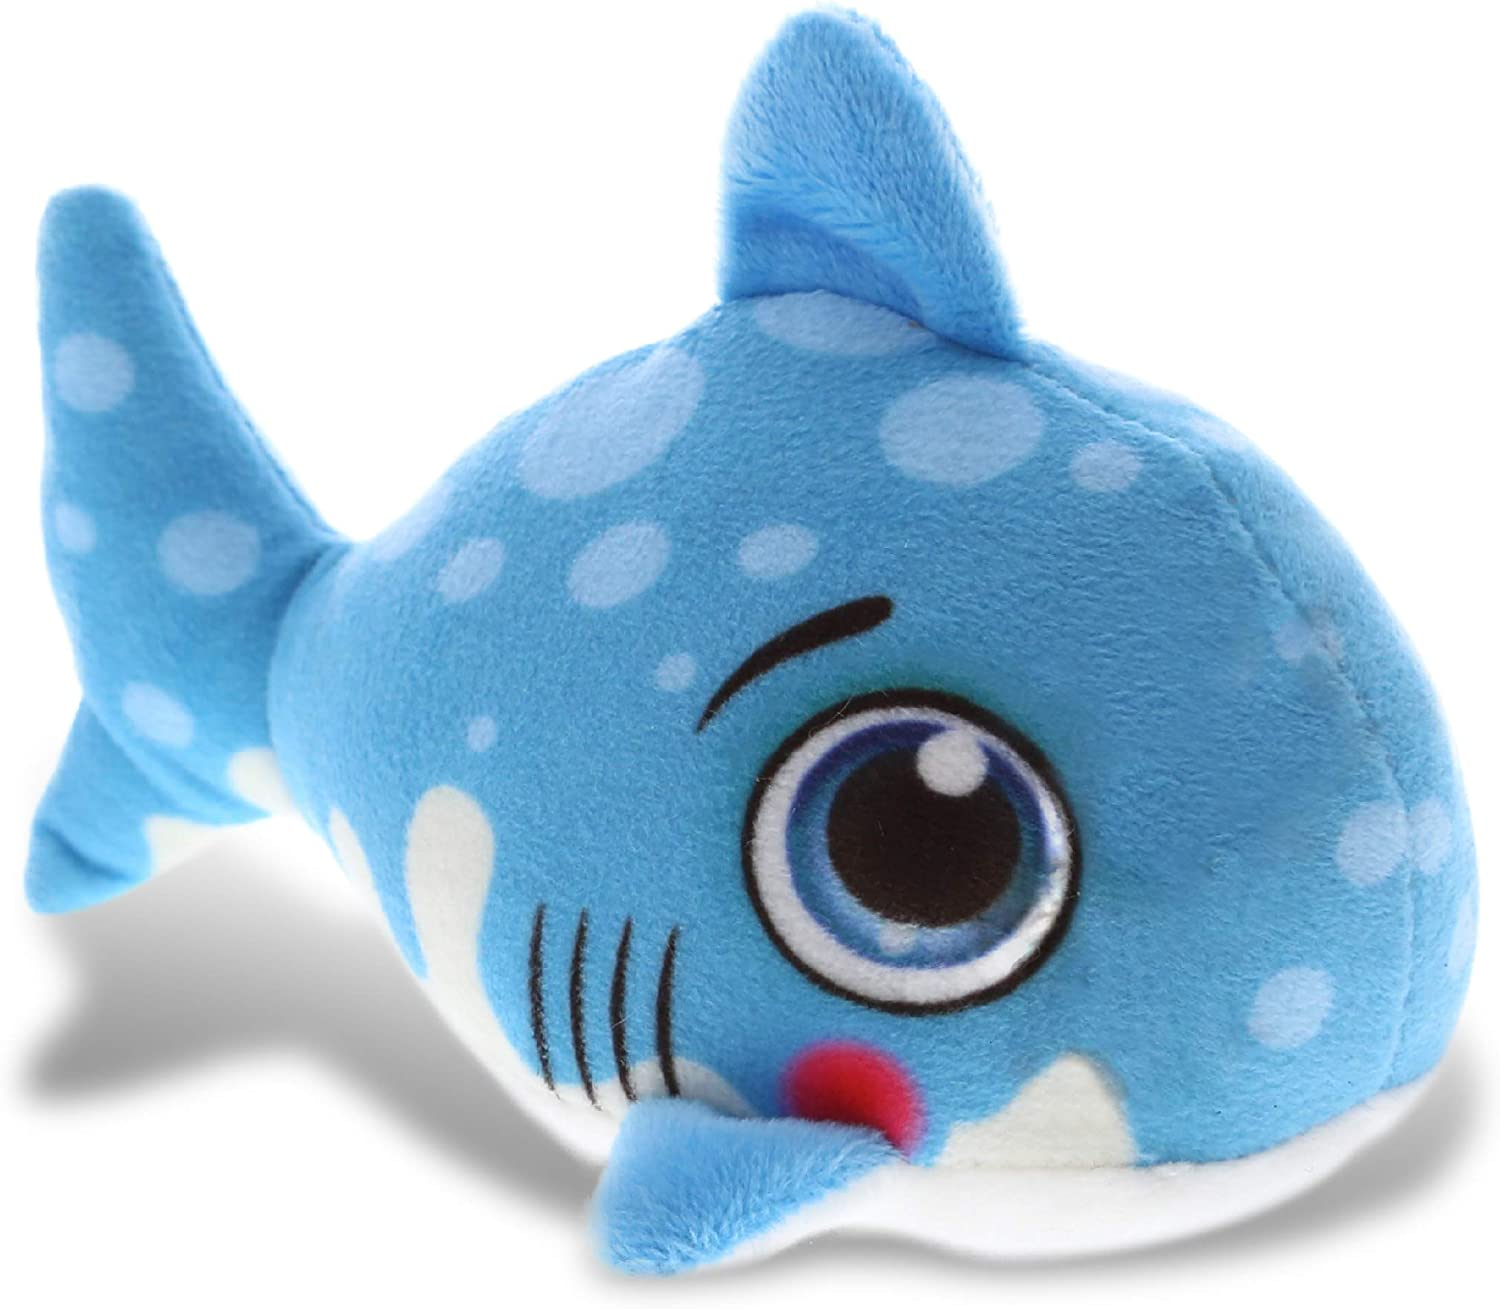 DolliBu Blue Shark Stuffed Animal Plush Toy, Kids & Adults Huggable Shark Cuddle Gifts, Cute Stuffed Animals for Toddler & Baby's First Sea Creature Plush, Super Soft Toys for Girls & Boys 5.5 Inch